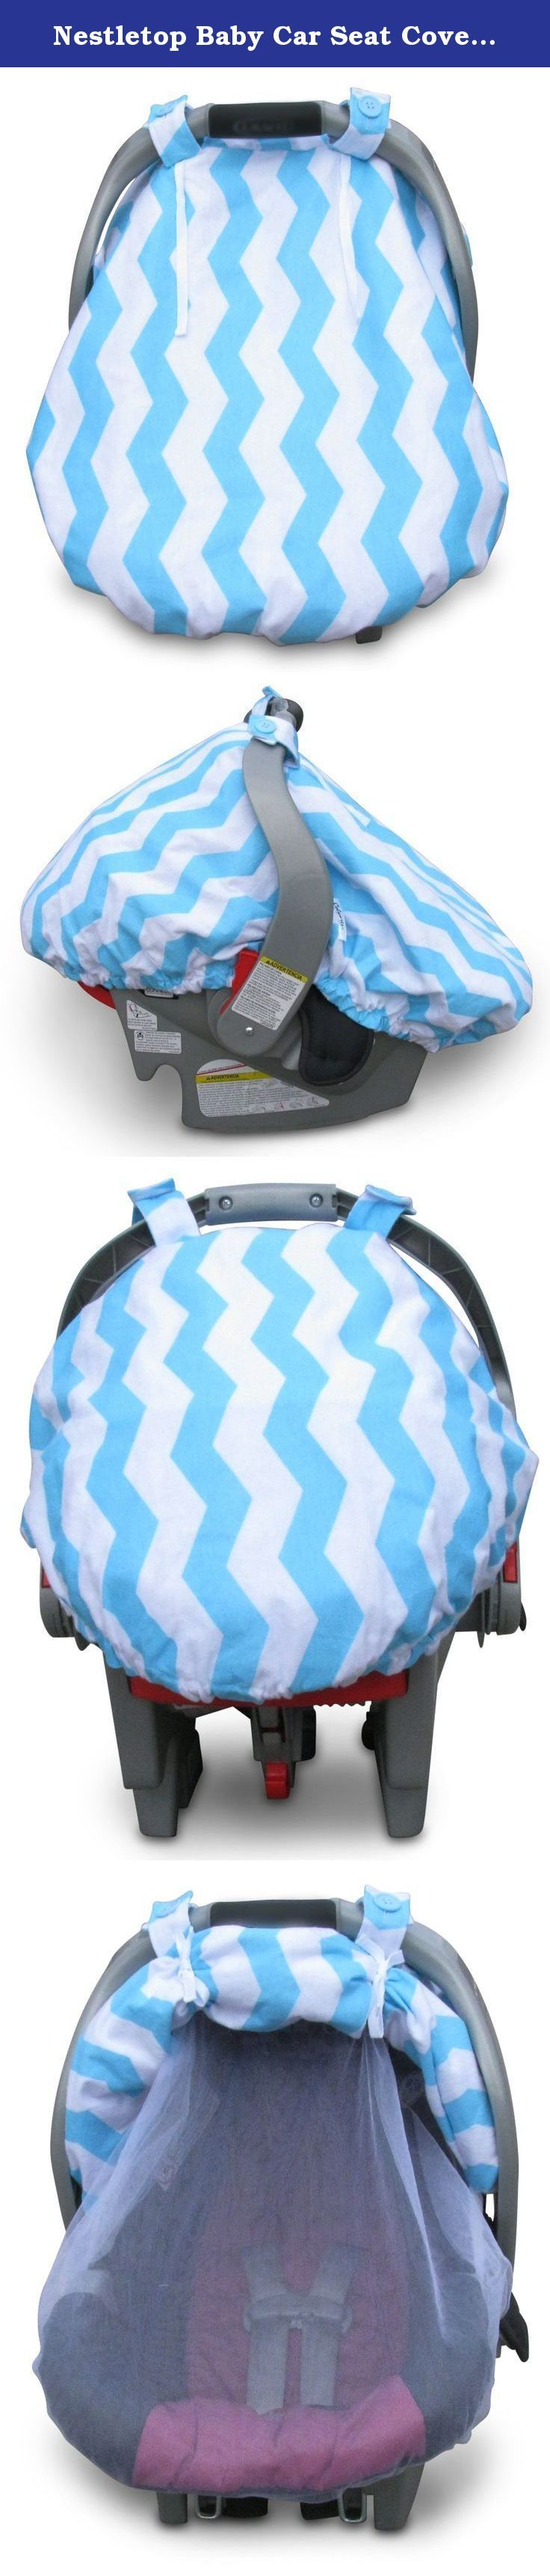 Nestletop Baby Car Seat Cover By Colwares - High Quality Protective Cover For Wind, Rain, Snow, Debris, & Pests (Light Blue Stripes). Multifunctional & Efficient-The Best Car Seat Cover Can Finally Be Yours! If you want to keep your baby fully protected from any possible threat while being in their car seat, this is the product you need. A cover that is specially designed for your little baby's car seat! Learn Why This Product Is Perfect For Every Parent Below: •Features an ideal interior...